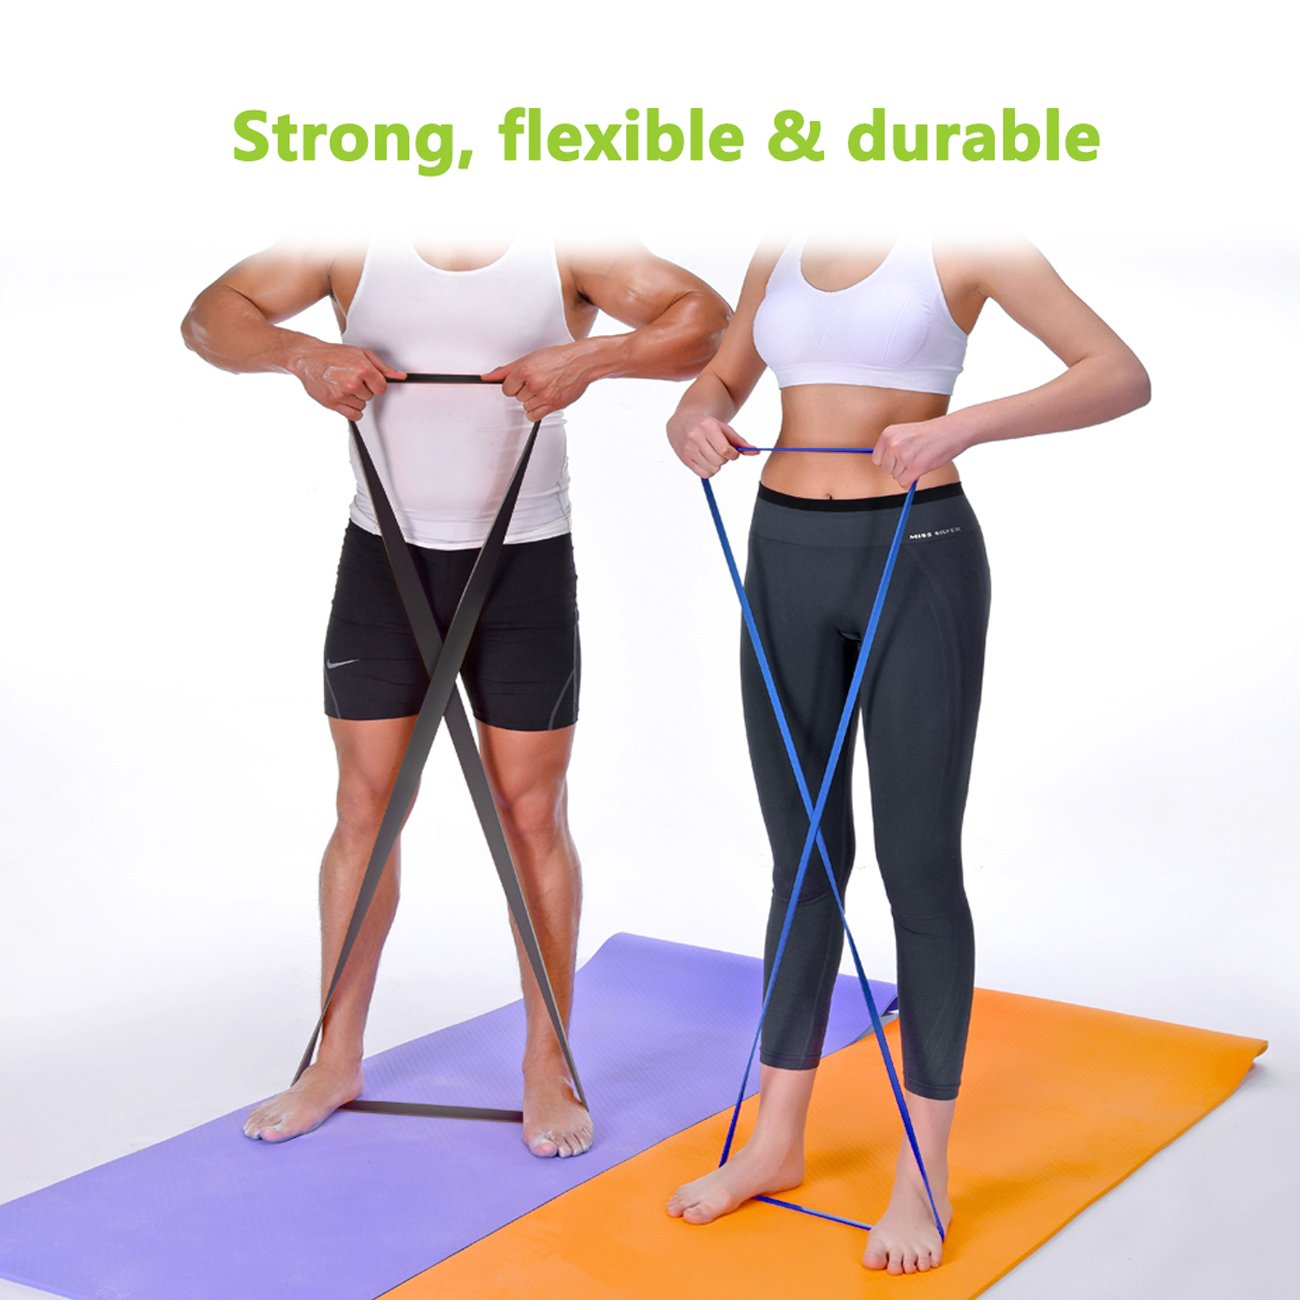 Resistance Loop Exercise Bands,GM5SMART Exercise Loops Fitness-Physical Therapy or Workout Bands with Instruction Guide,Carry bag,Set of 5